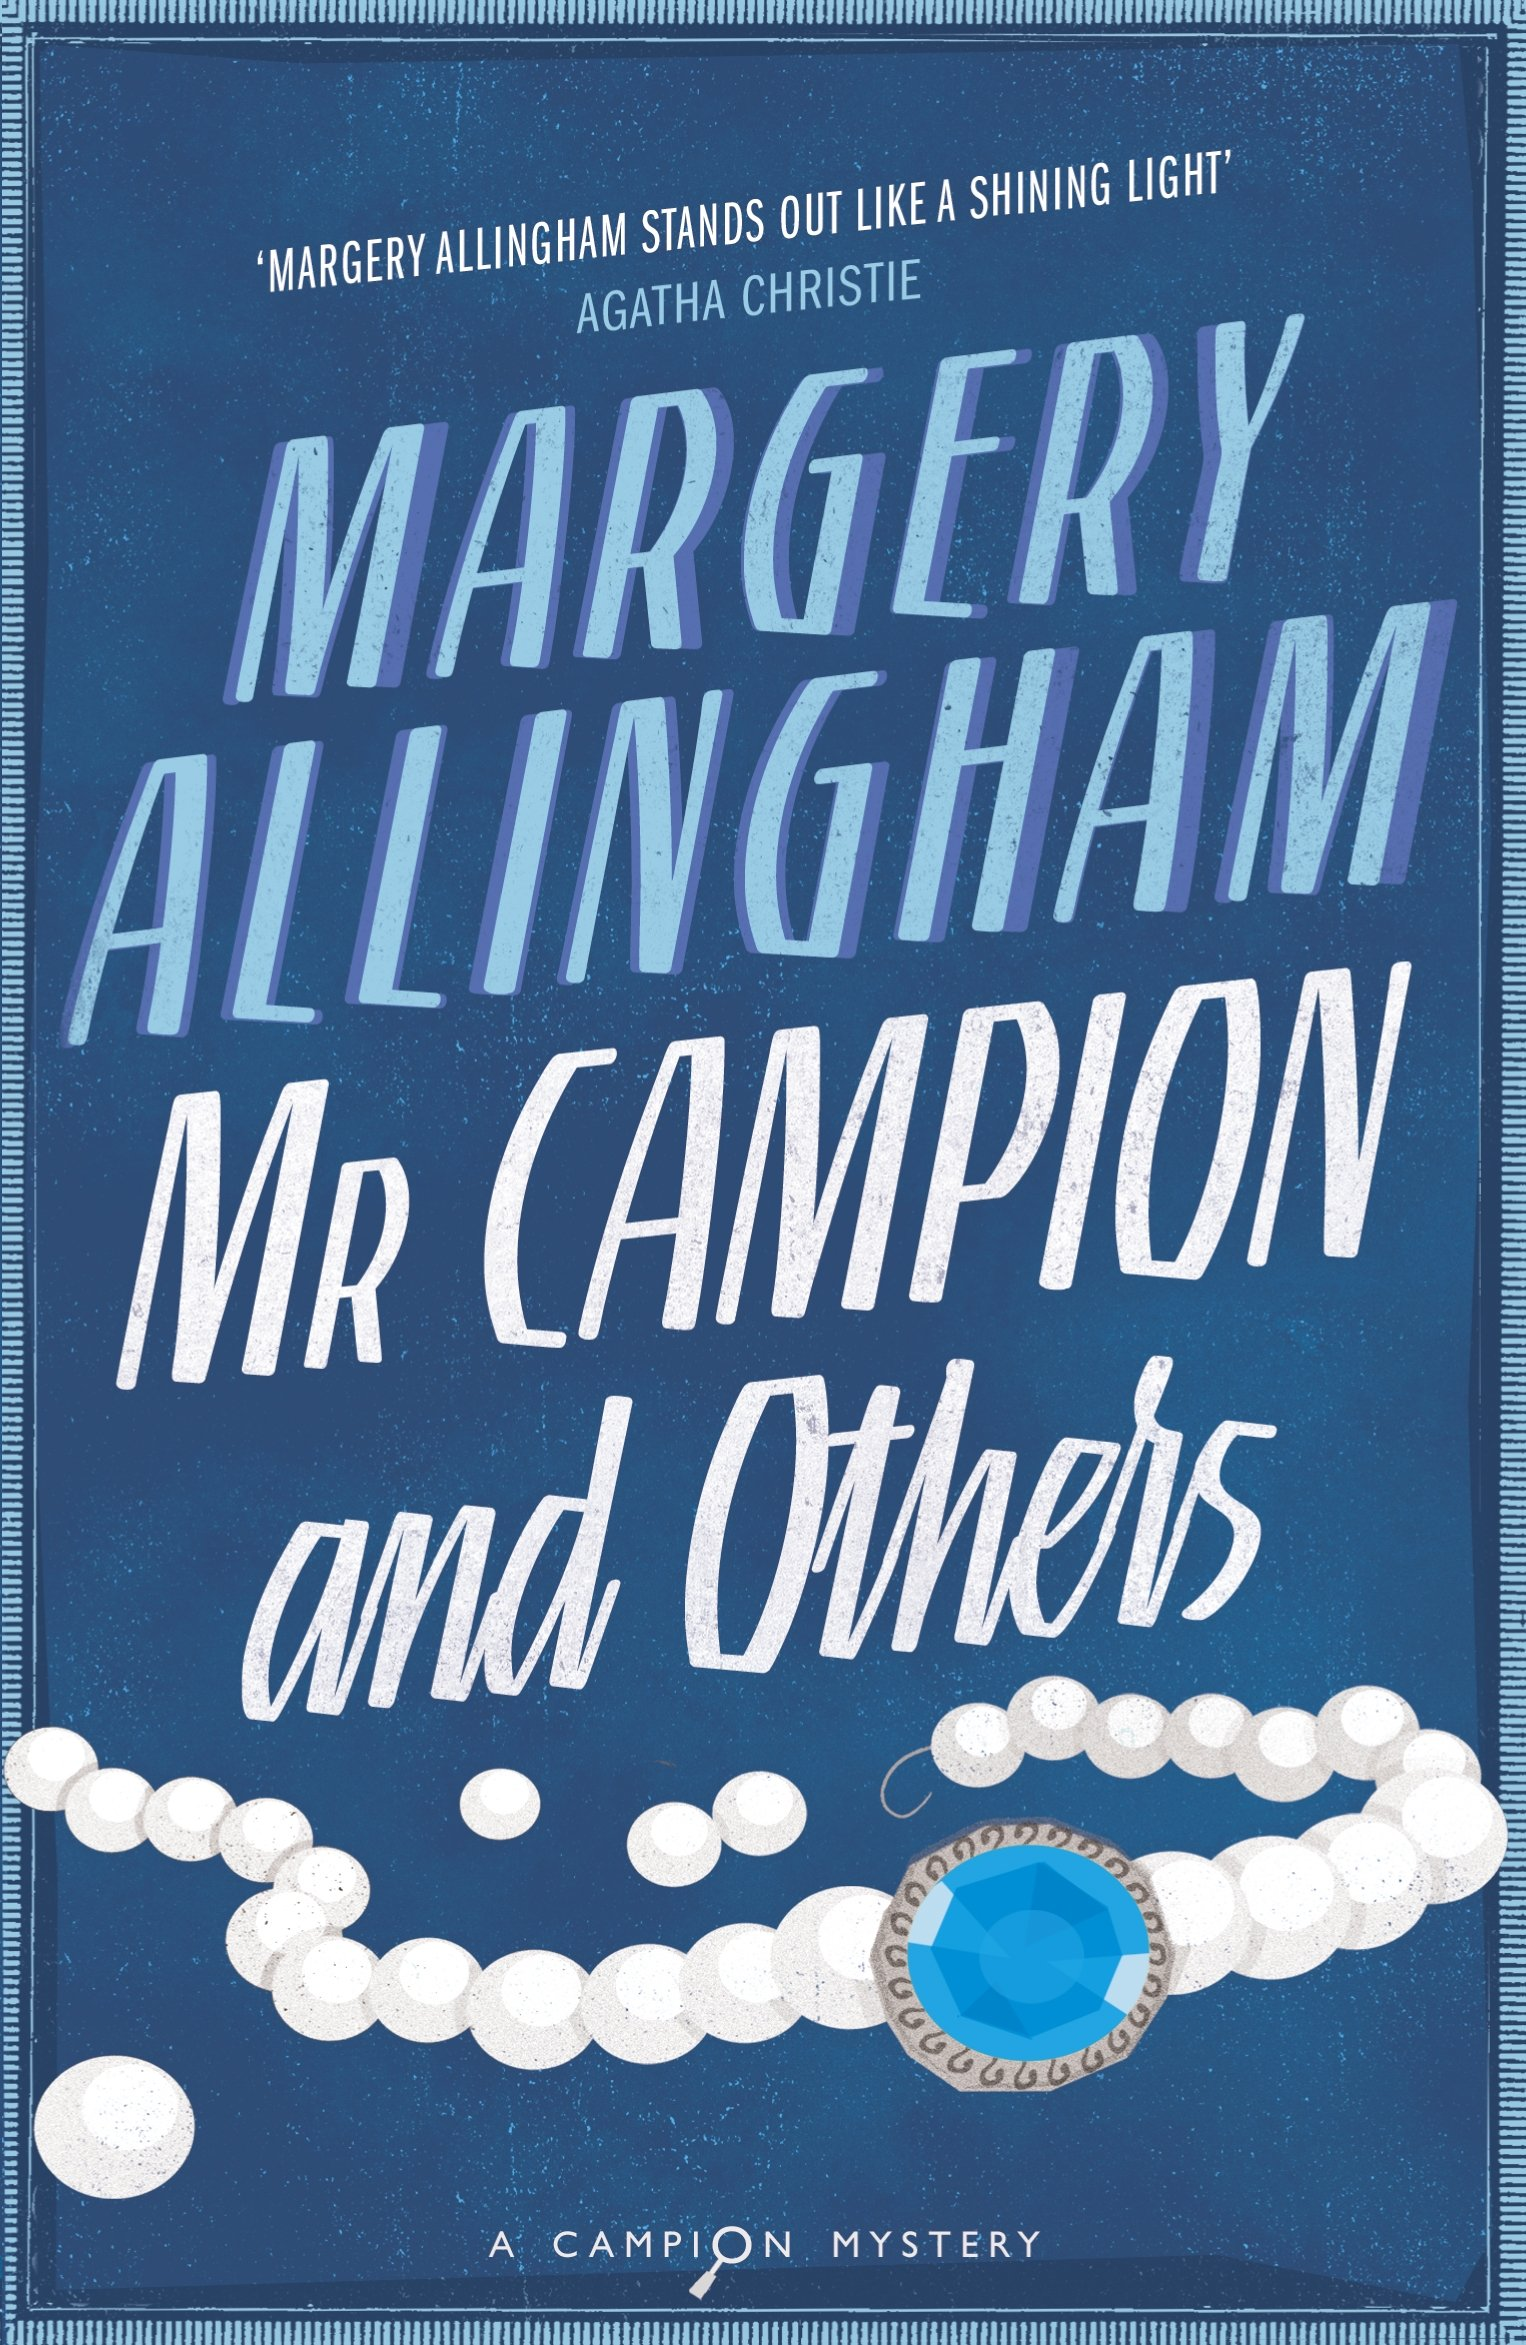 Mr Campion & Others (Vintage Classic Crimes)